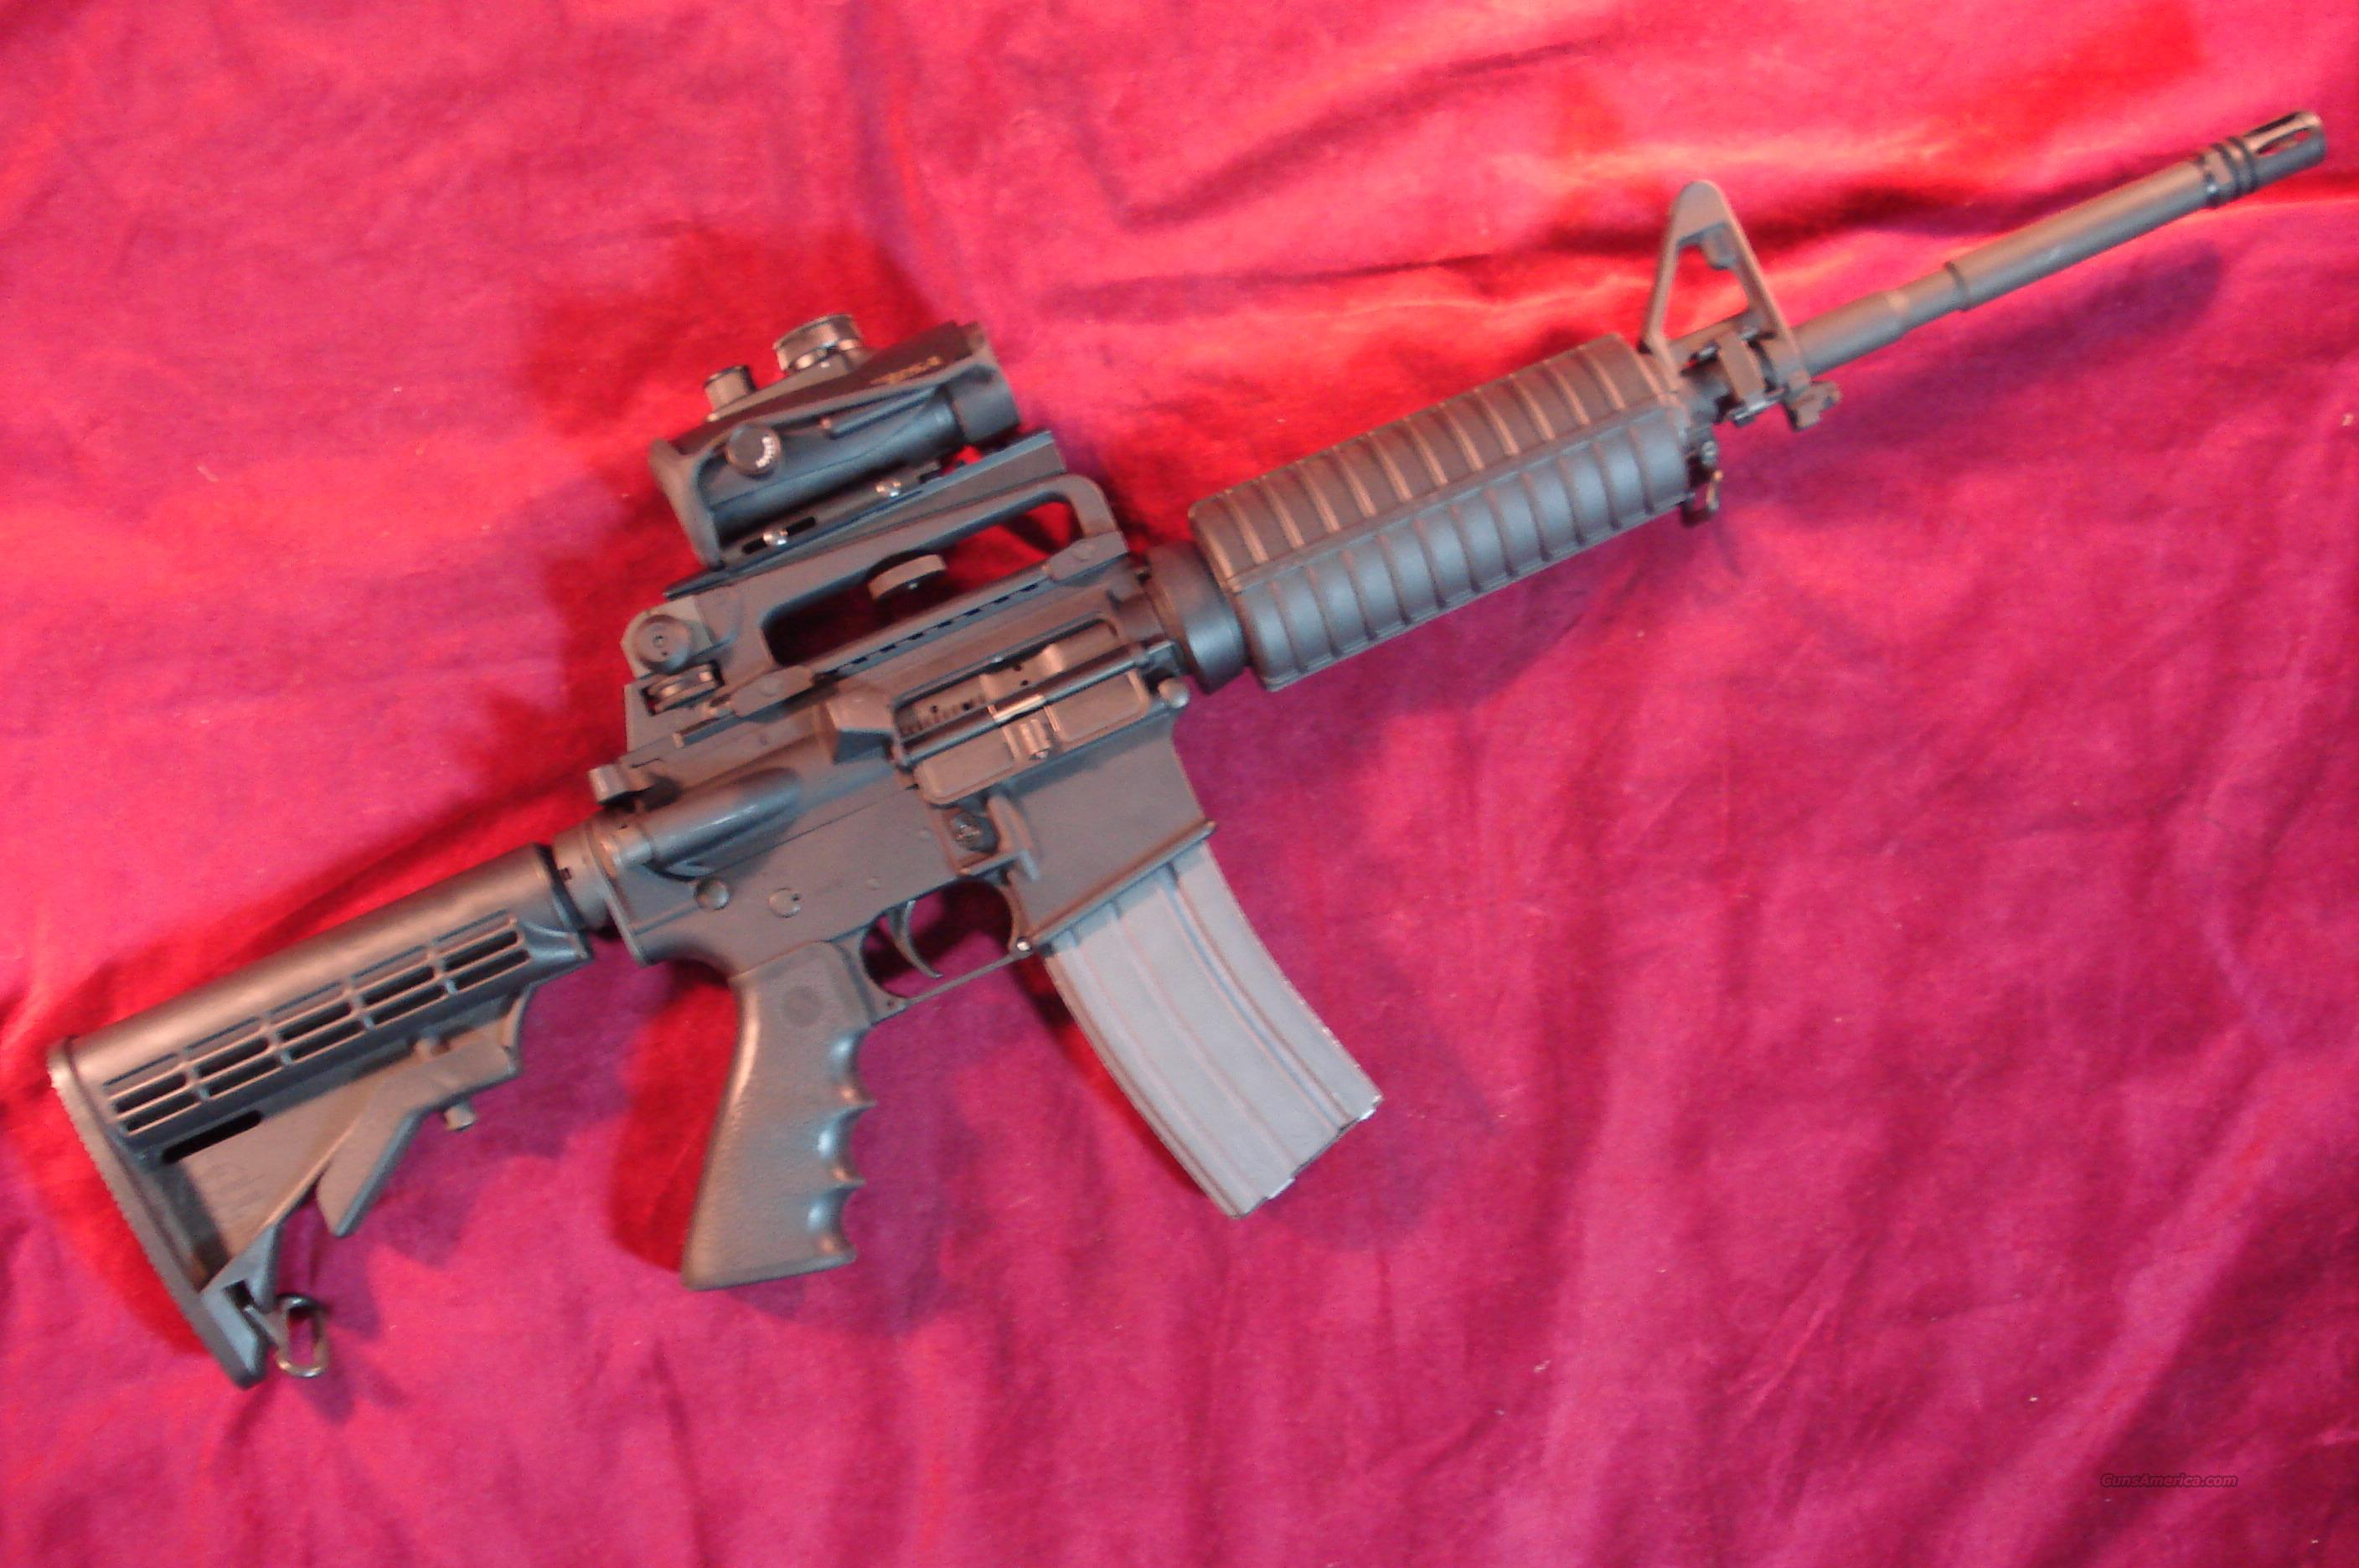 ROCK RIVER AR15 223 CAL W/ BSA RED DOT SIGHT AND HARD CASE USED   Guns > Rifles > Rock River Arms Rifles